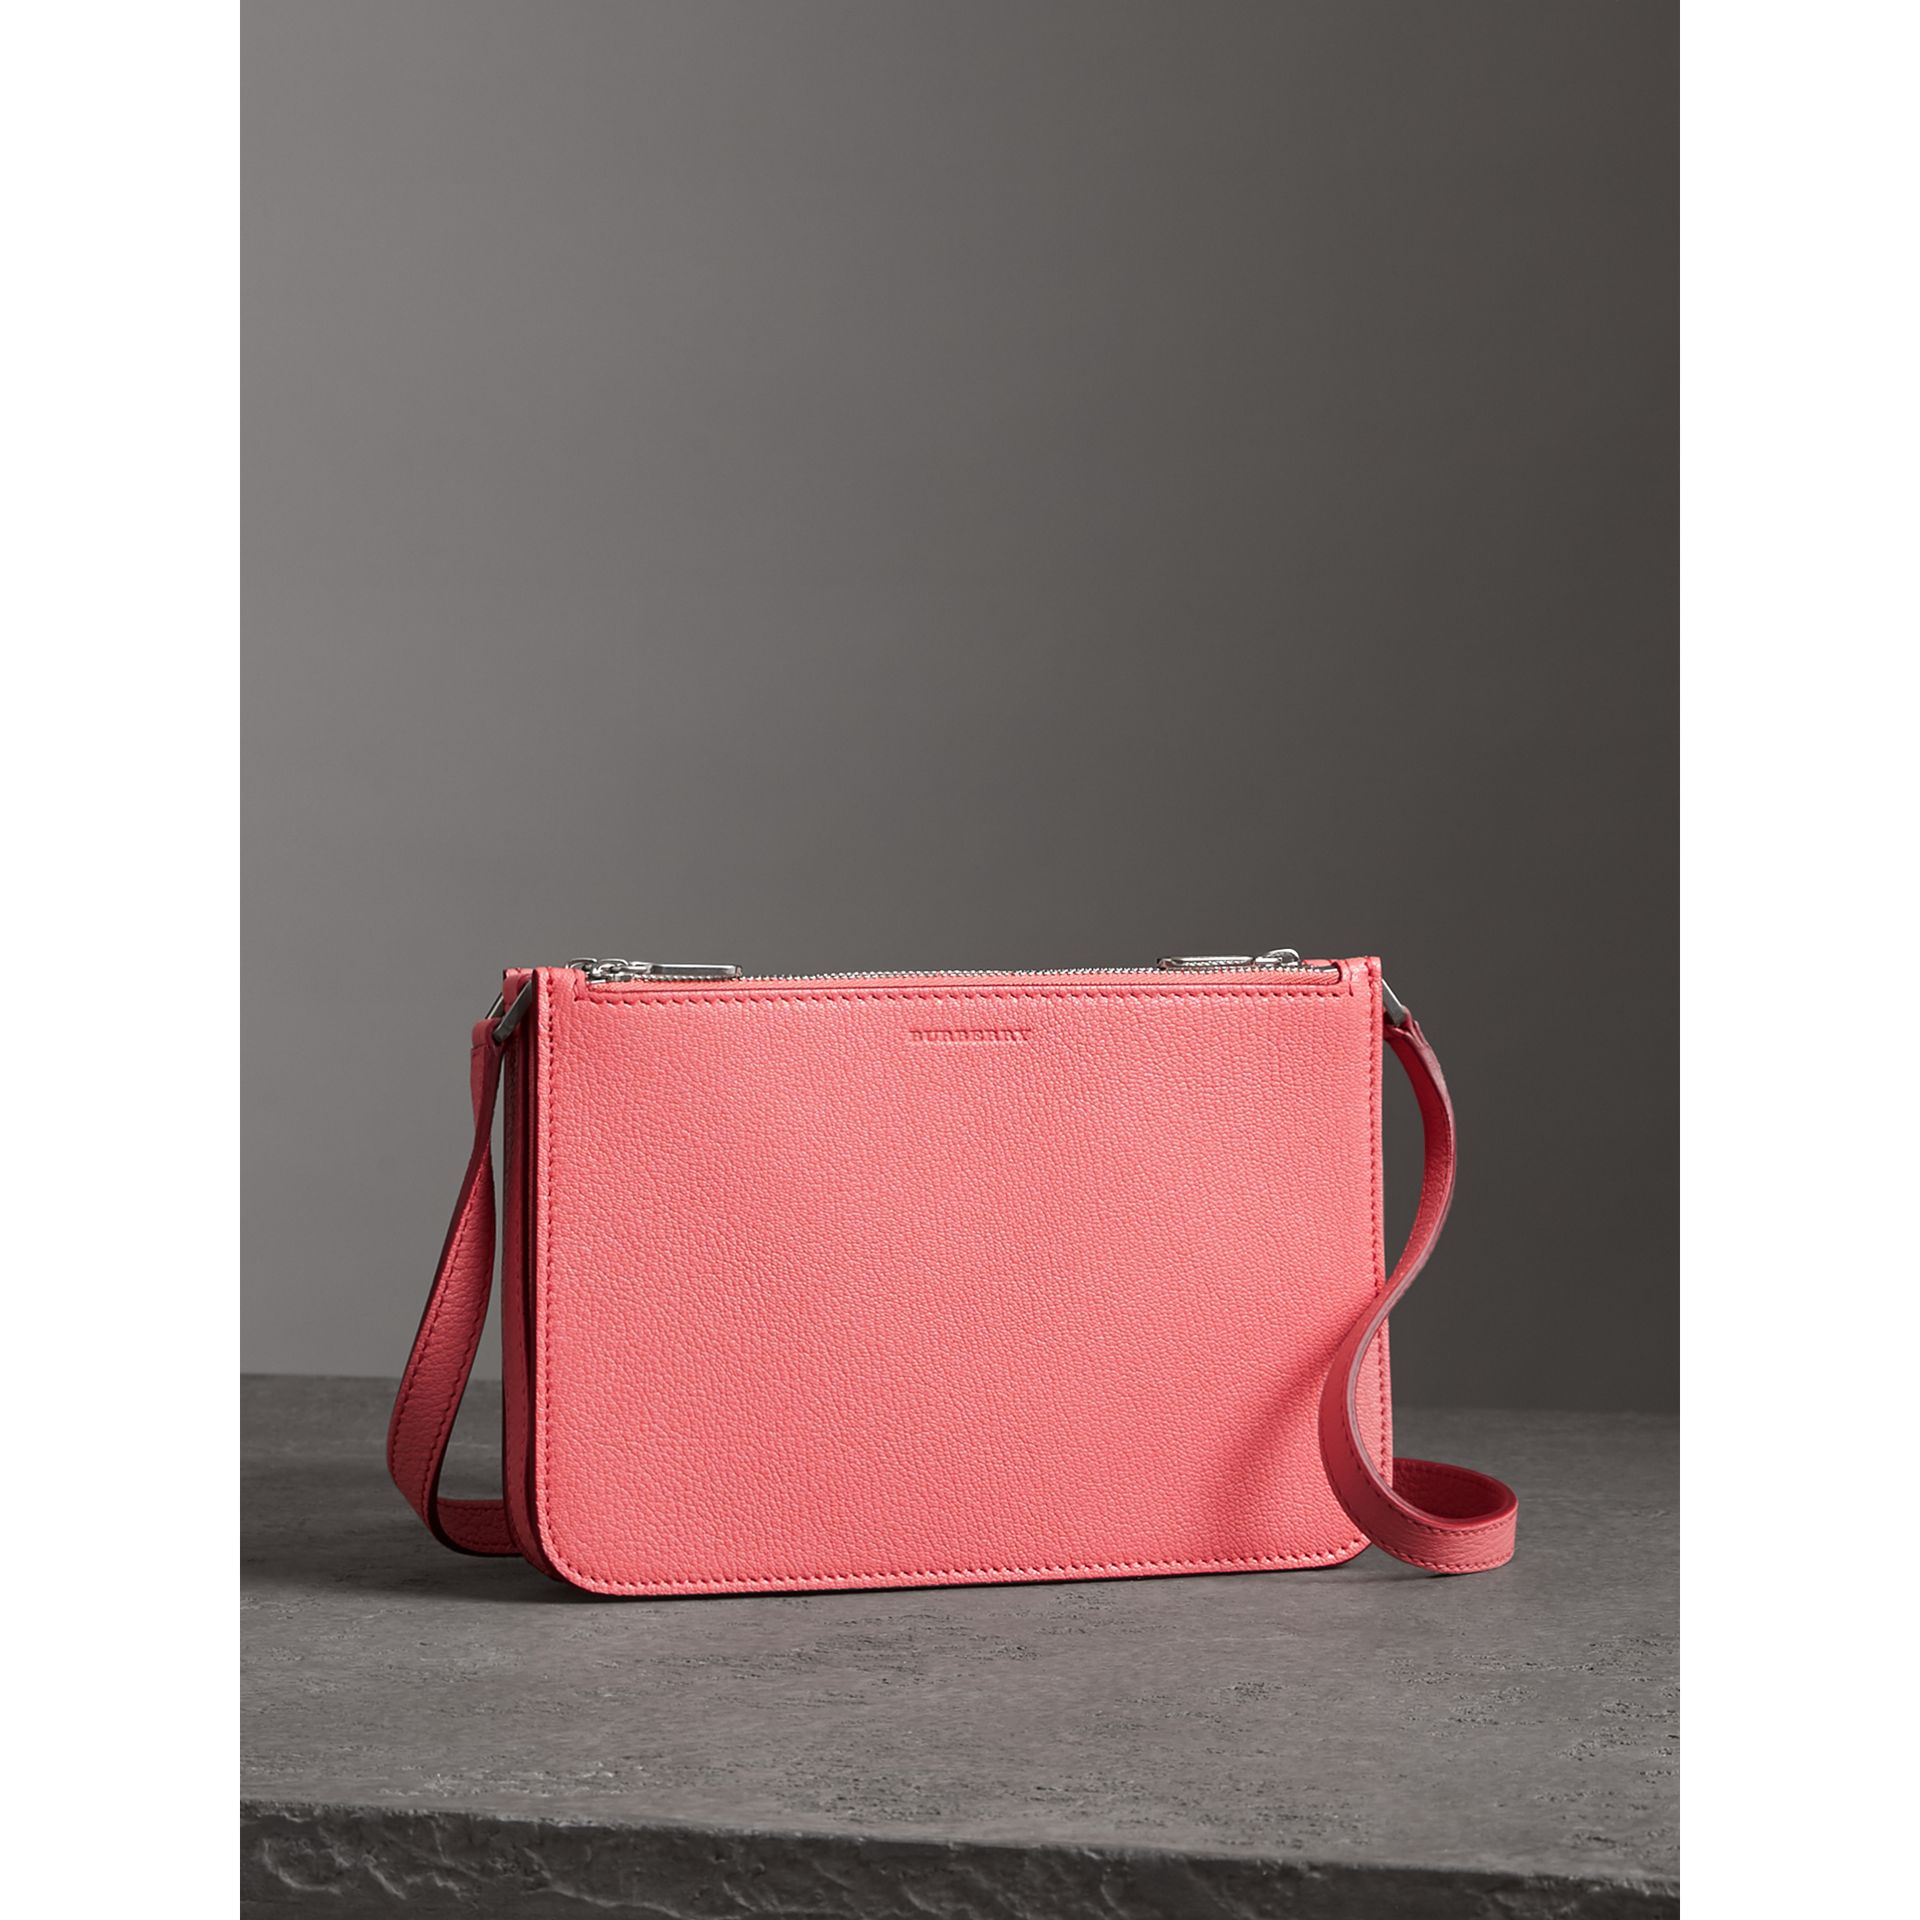 Triple Zip Grainy Leather Crossbody Bag in Bright Coral Pink - Women | Burberry United Kingdom - gallery image 6